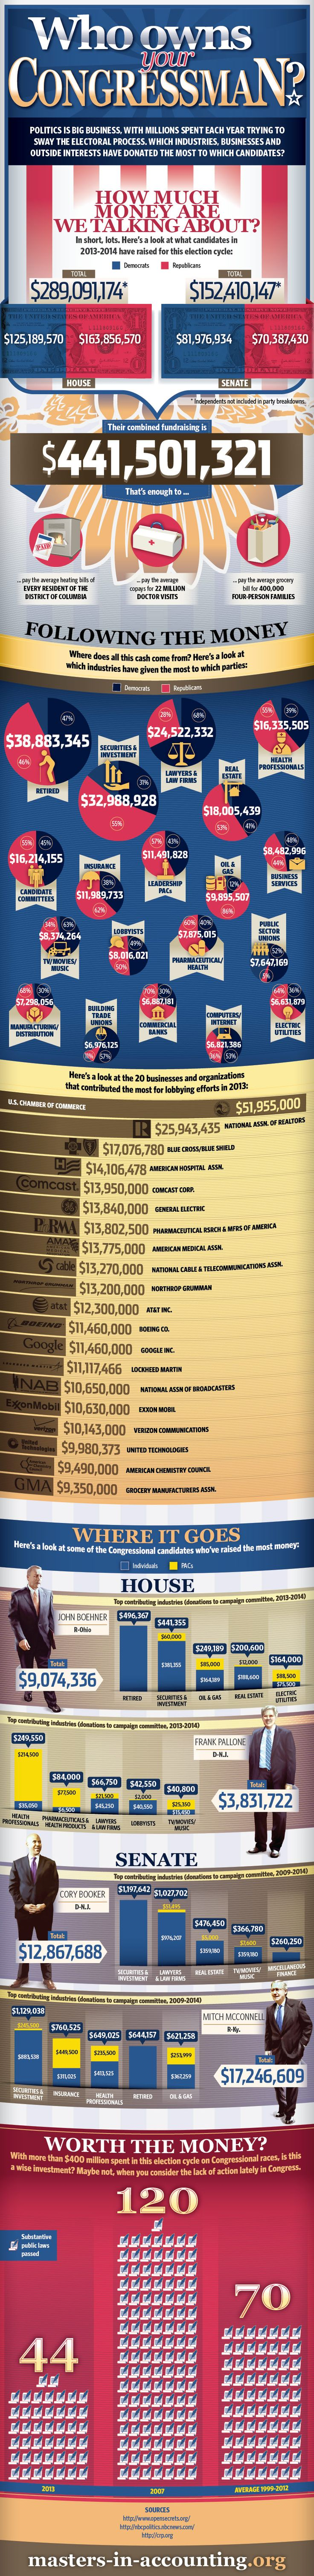 Who owns Congress?